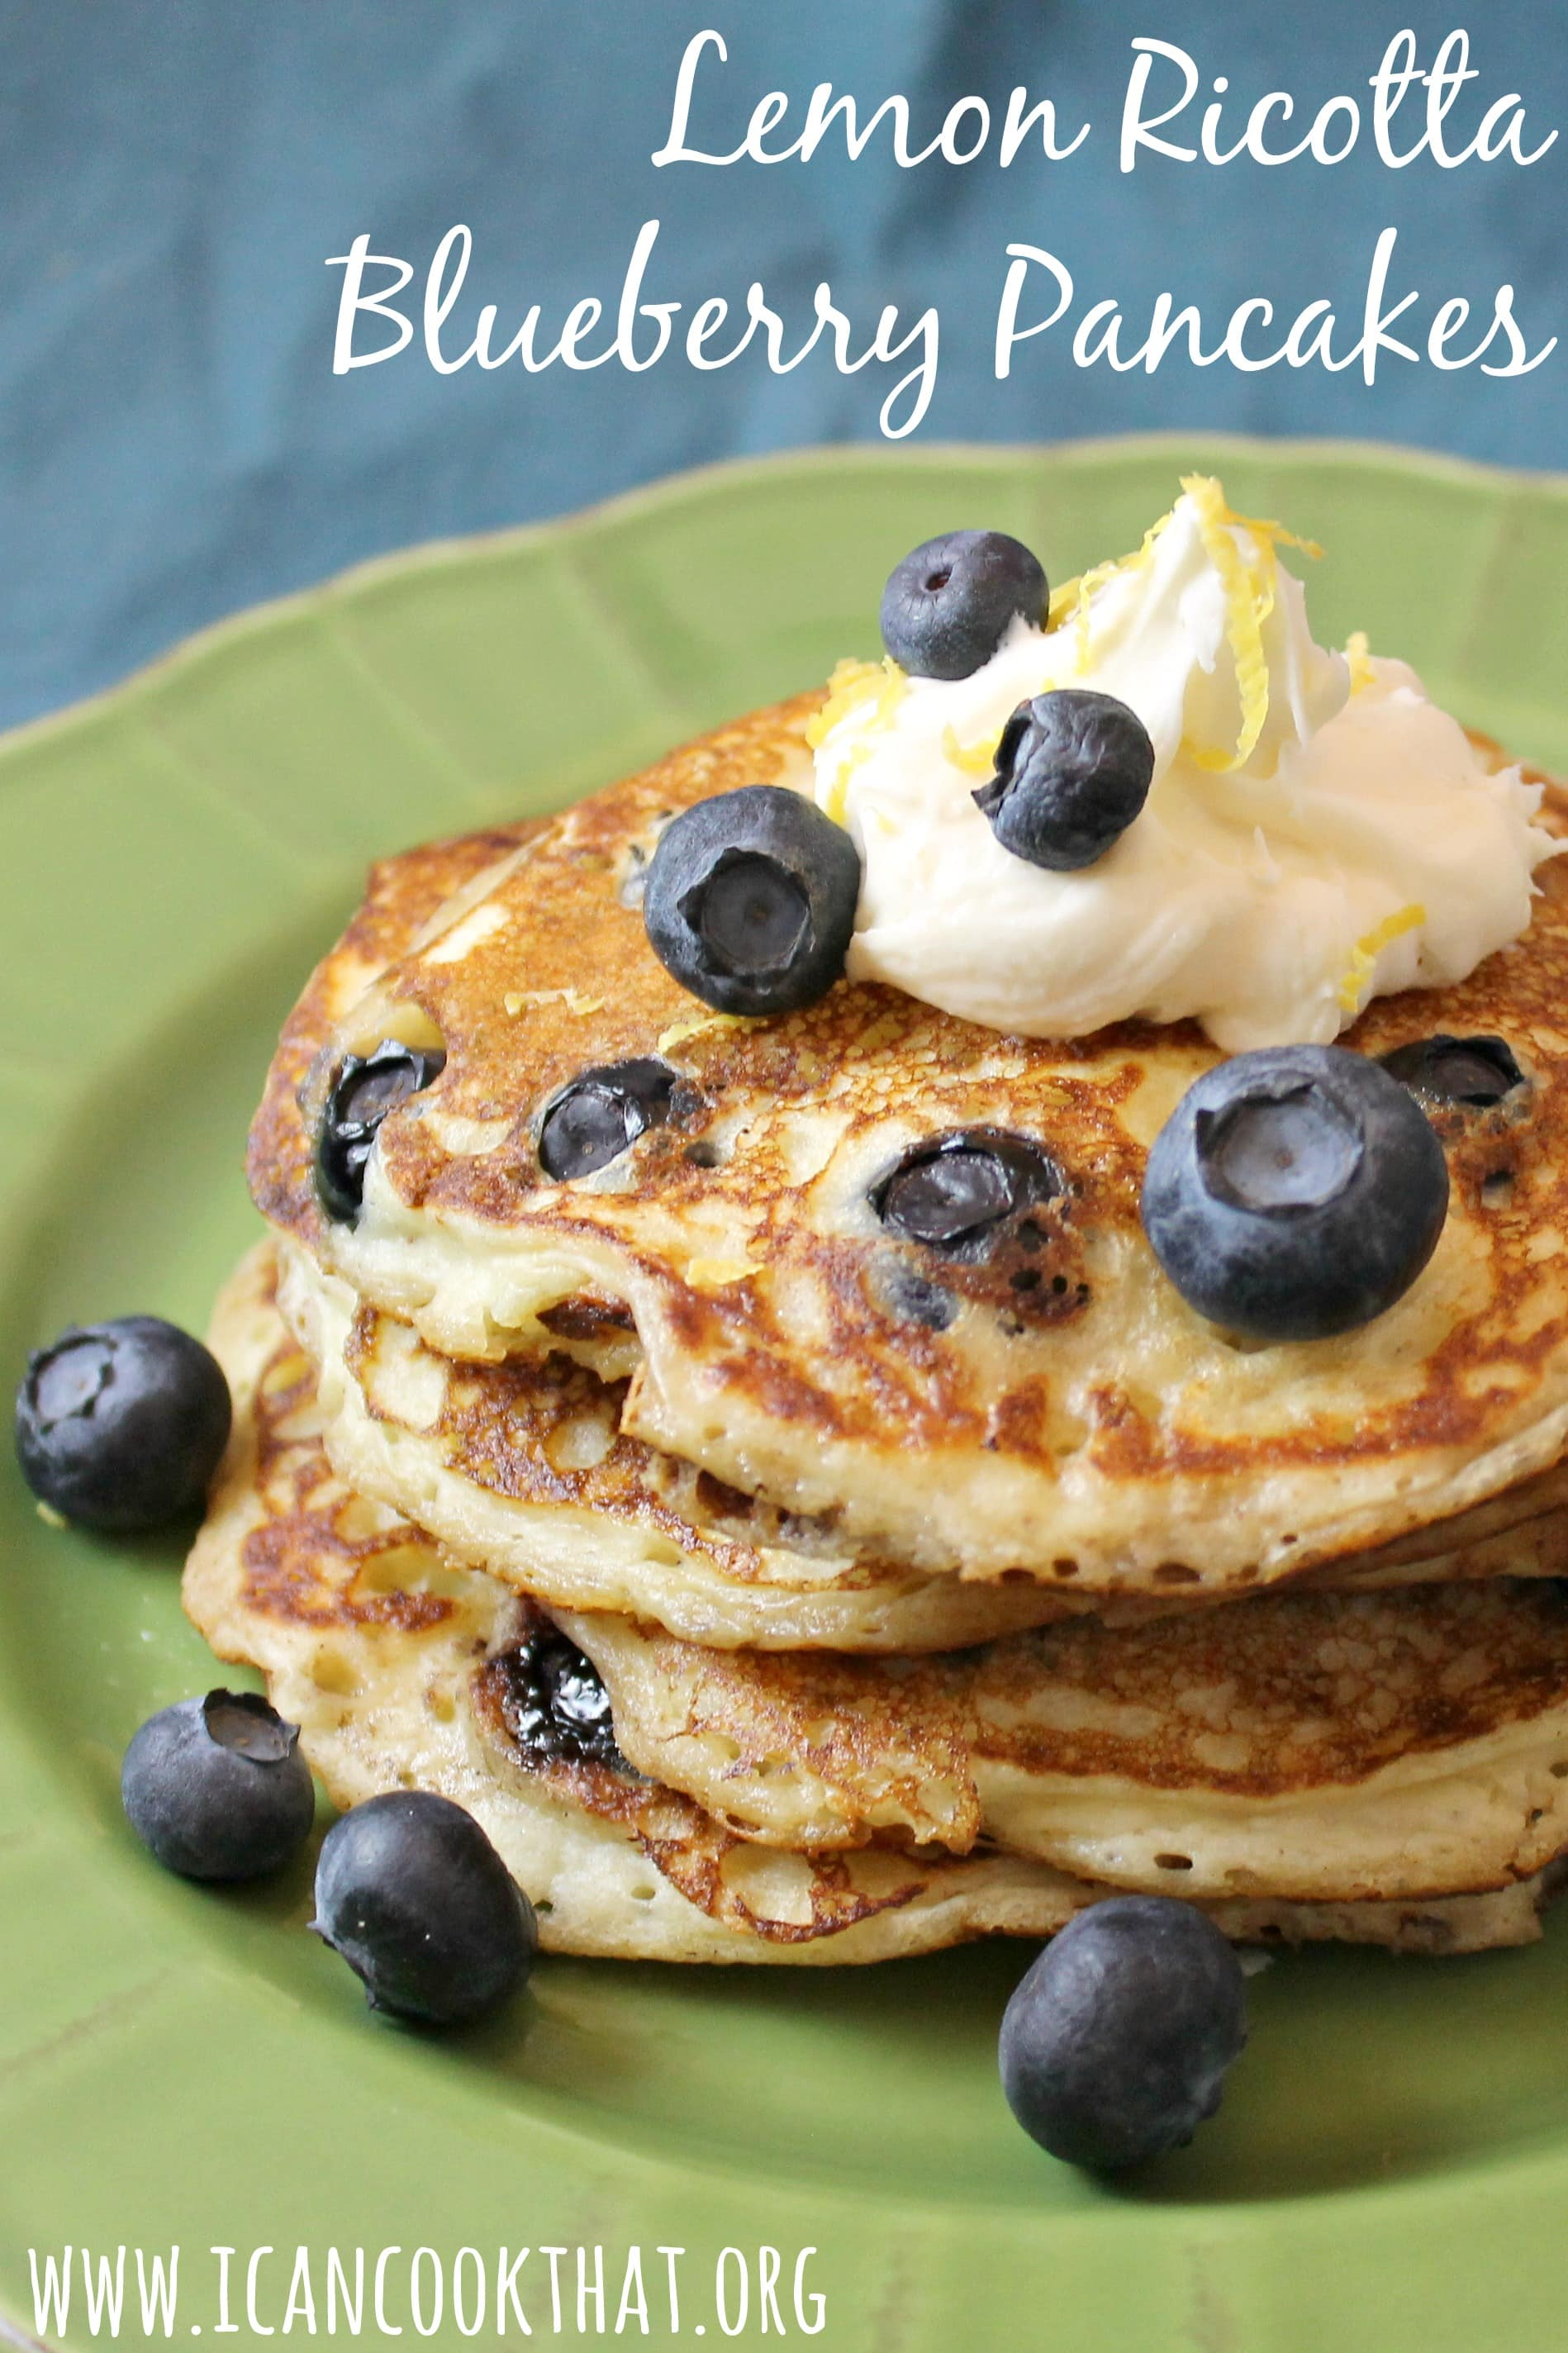 on traditional blueberry pancakes lemon ricotta blueberry pancakes